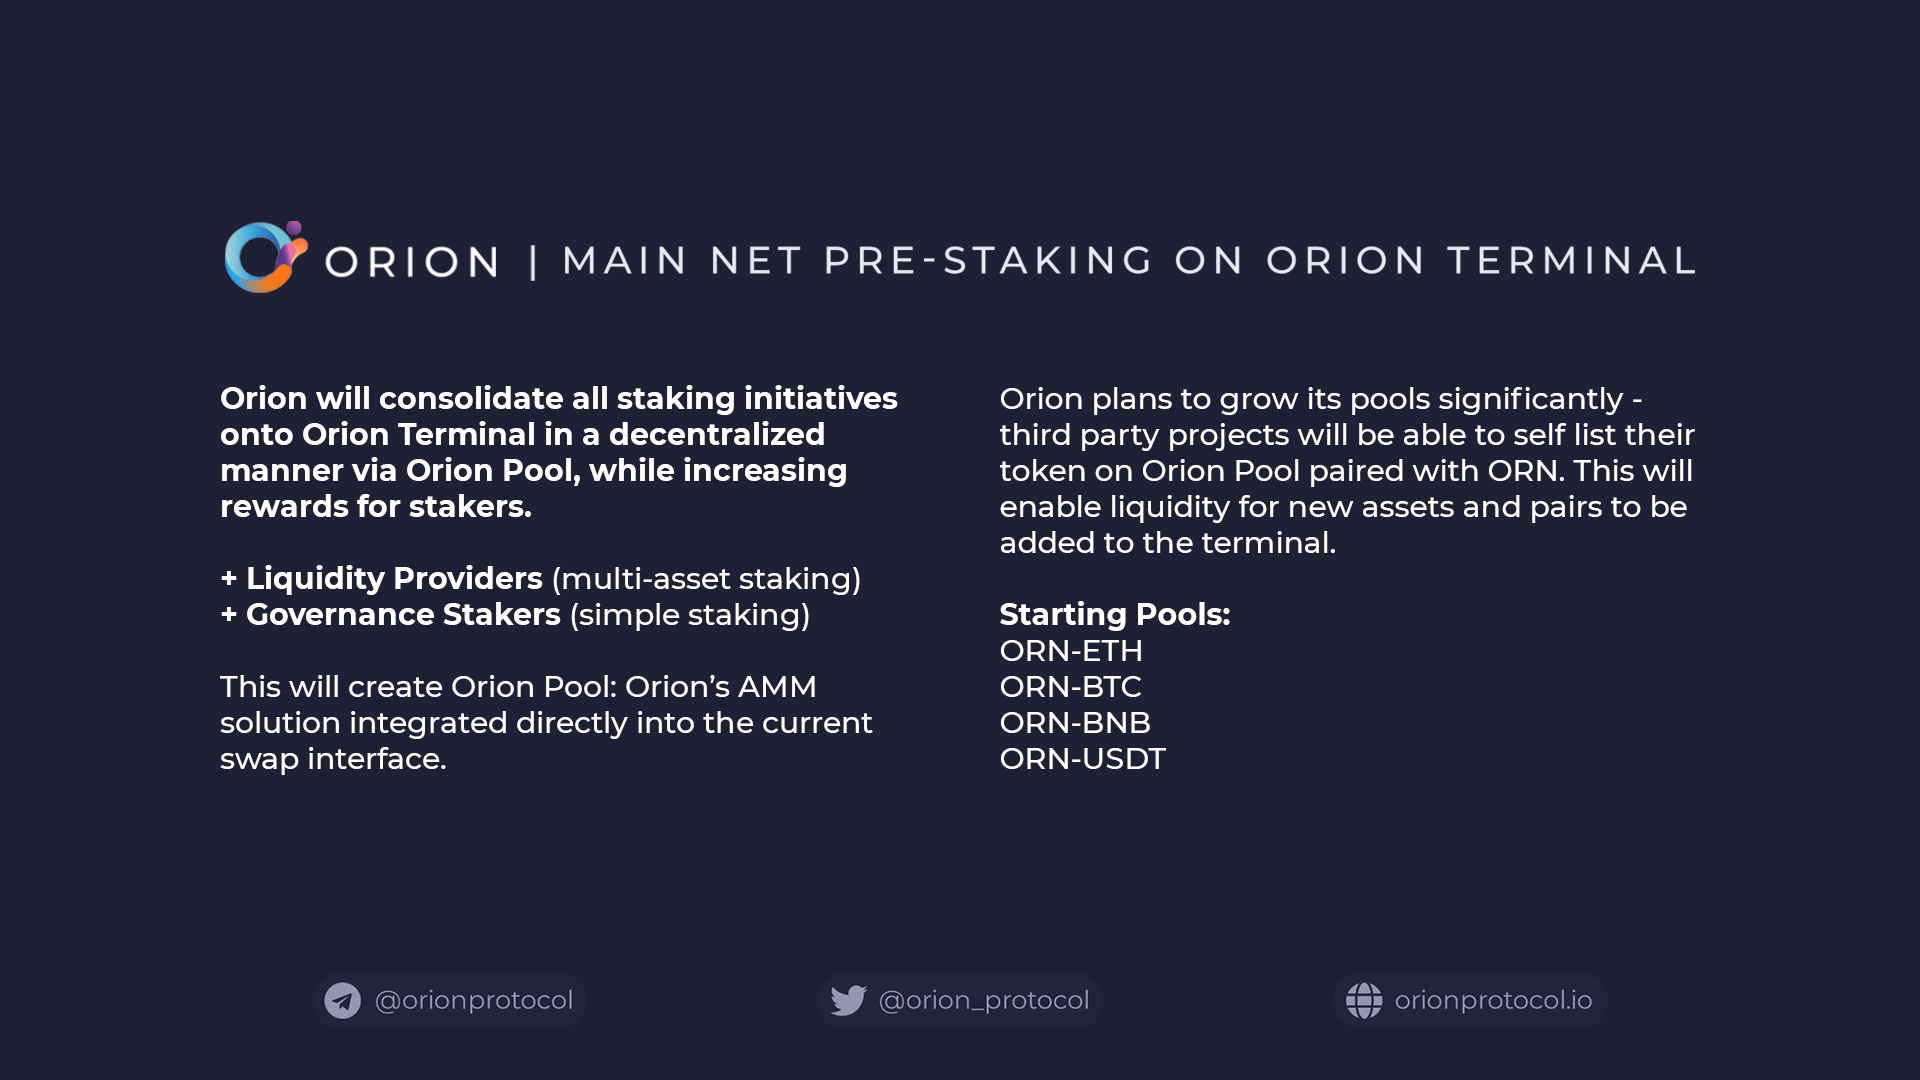 Orion Announces Main Net Pre-Staking via Orion AMM on Orion Terminal